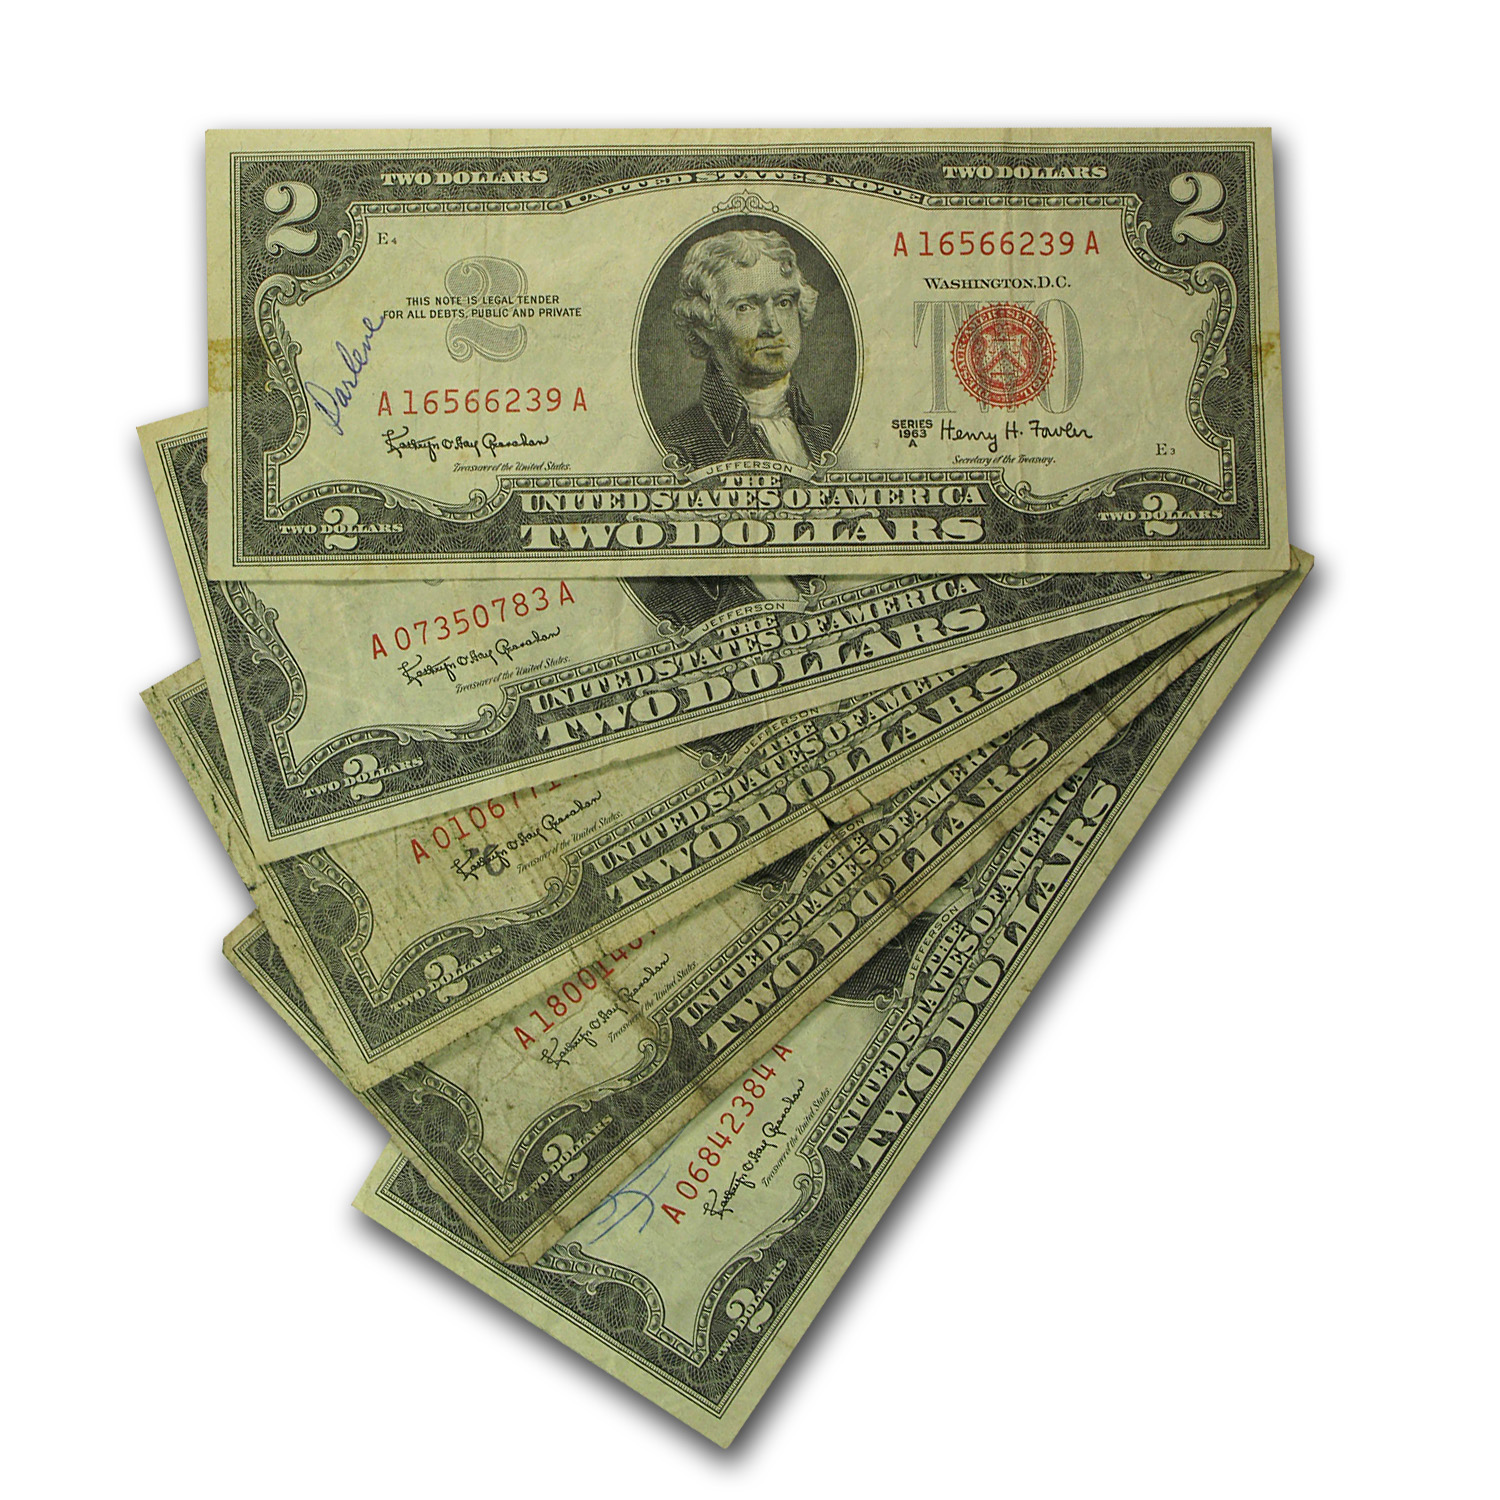 1963s $2.00 U.S. Note Red Seal Culls (Lots of 5)